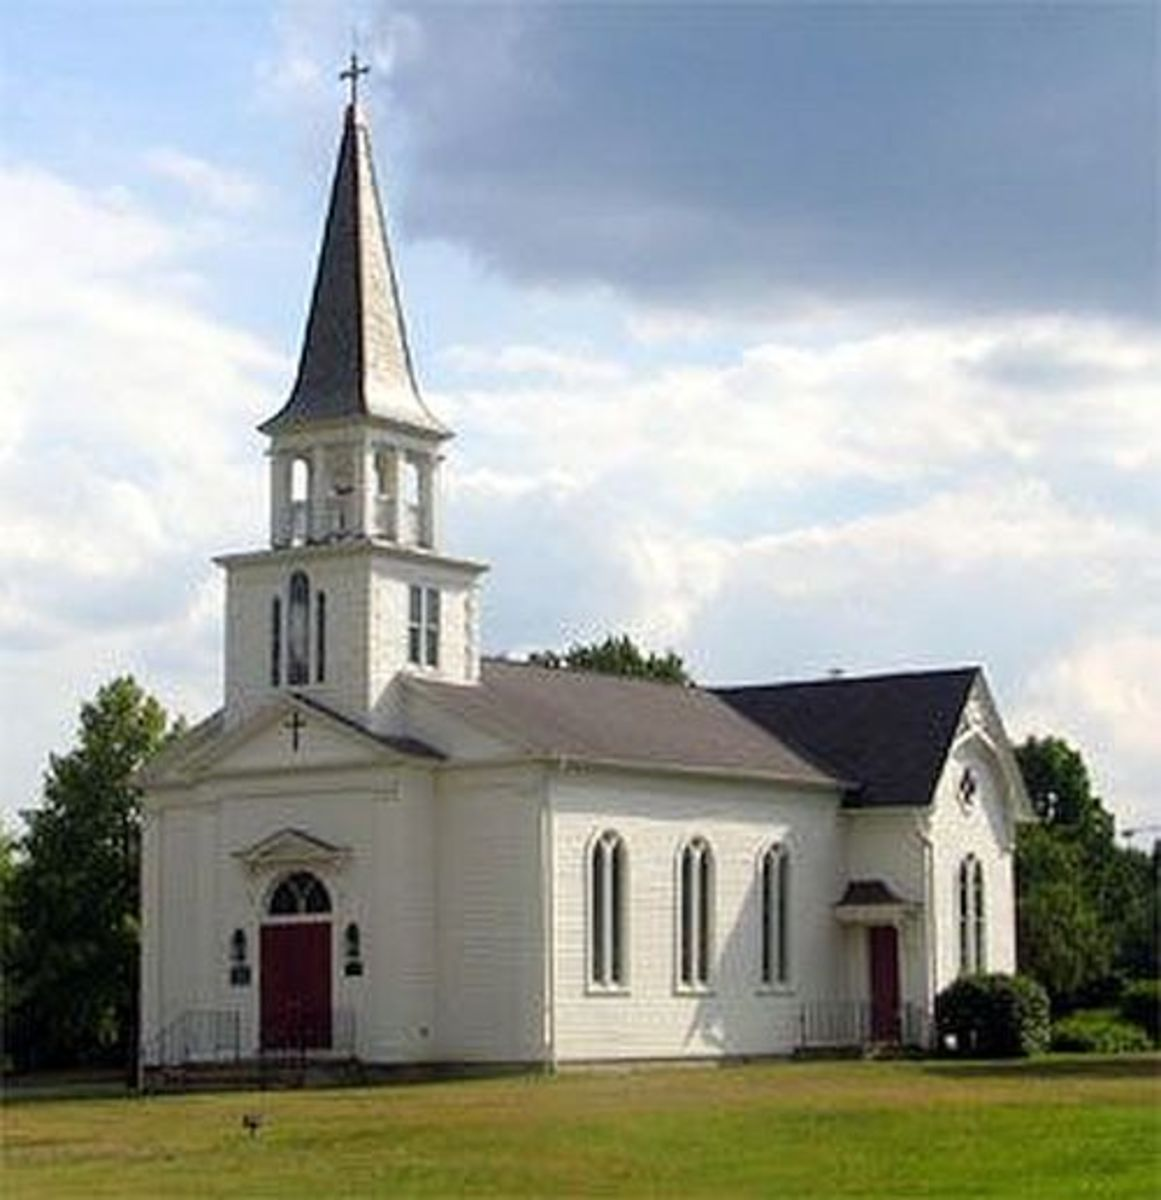 Church building is much smaller than the Kingdom of God.